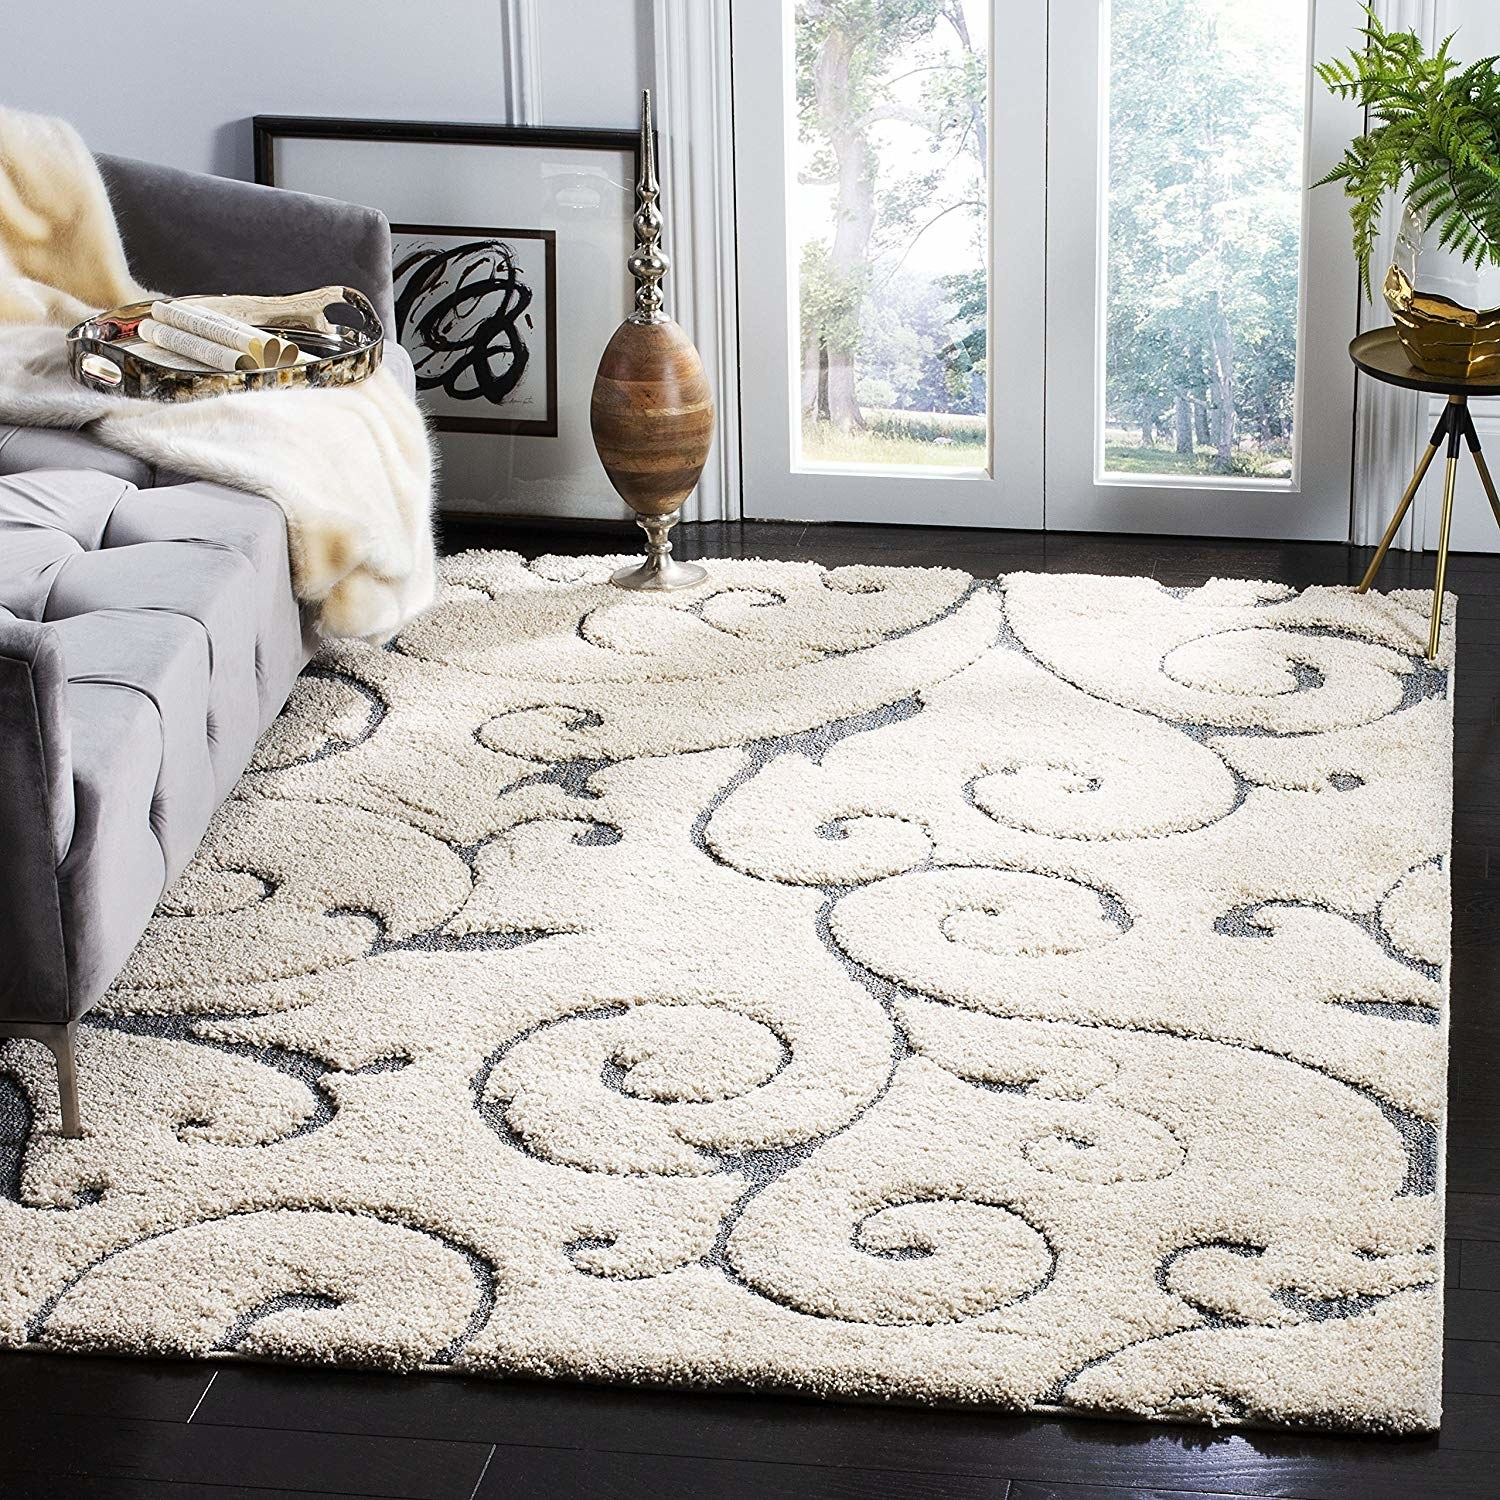 34 Of The Best Rugs You Can Find On